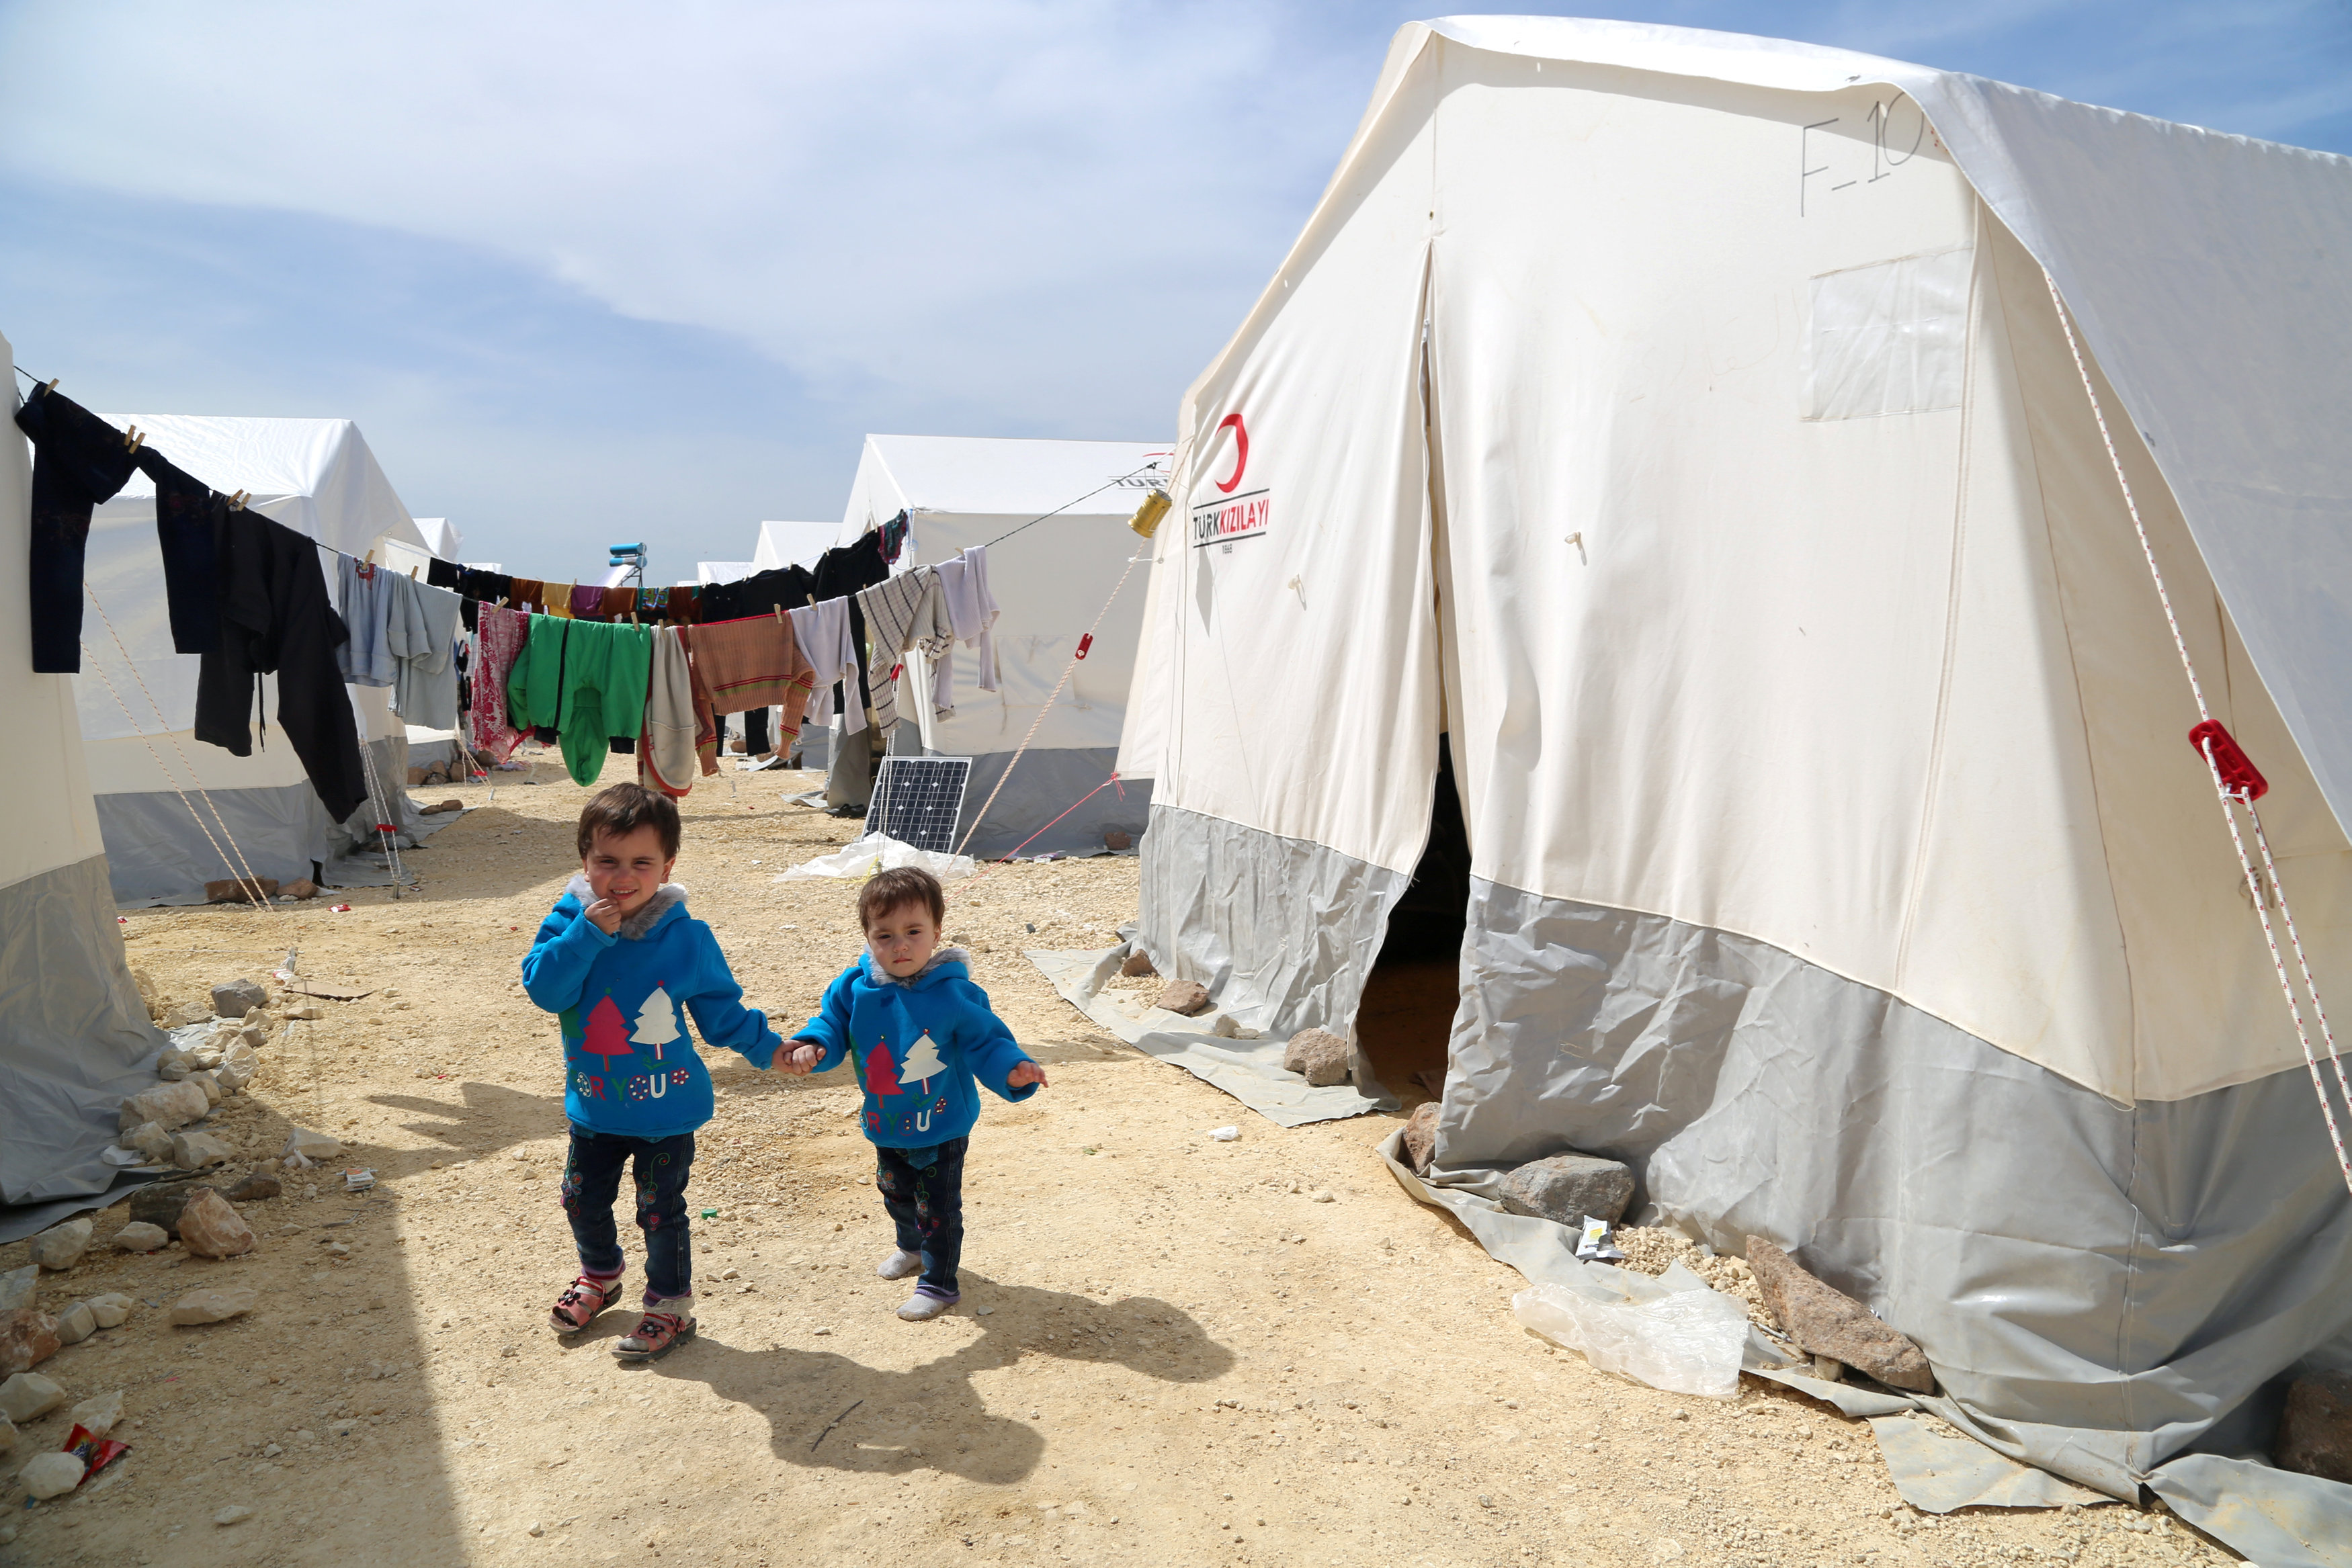 Limar and Masa al-Qari, child survivors of the suspected poison gas attack, walk outside a tent for the displaced, in the Northern Aleppo countryside, Syria April 17, 2018. Picture taken April 17, 2018. REUTERS/Mahmoud Hassano